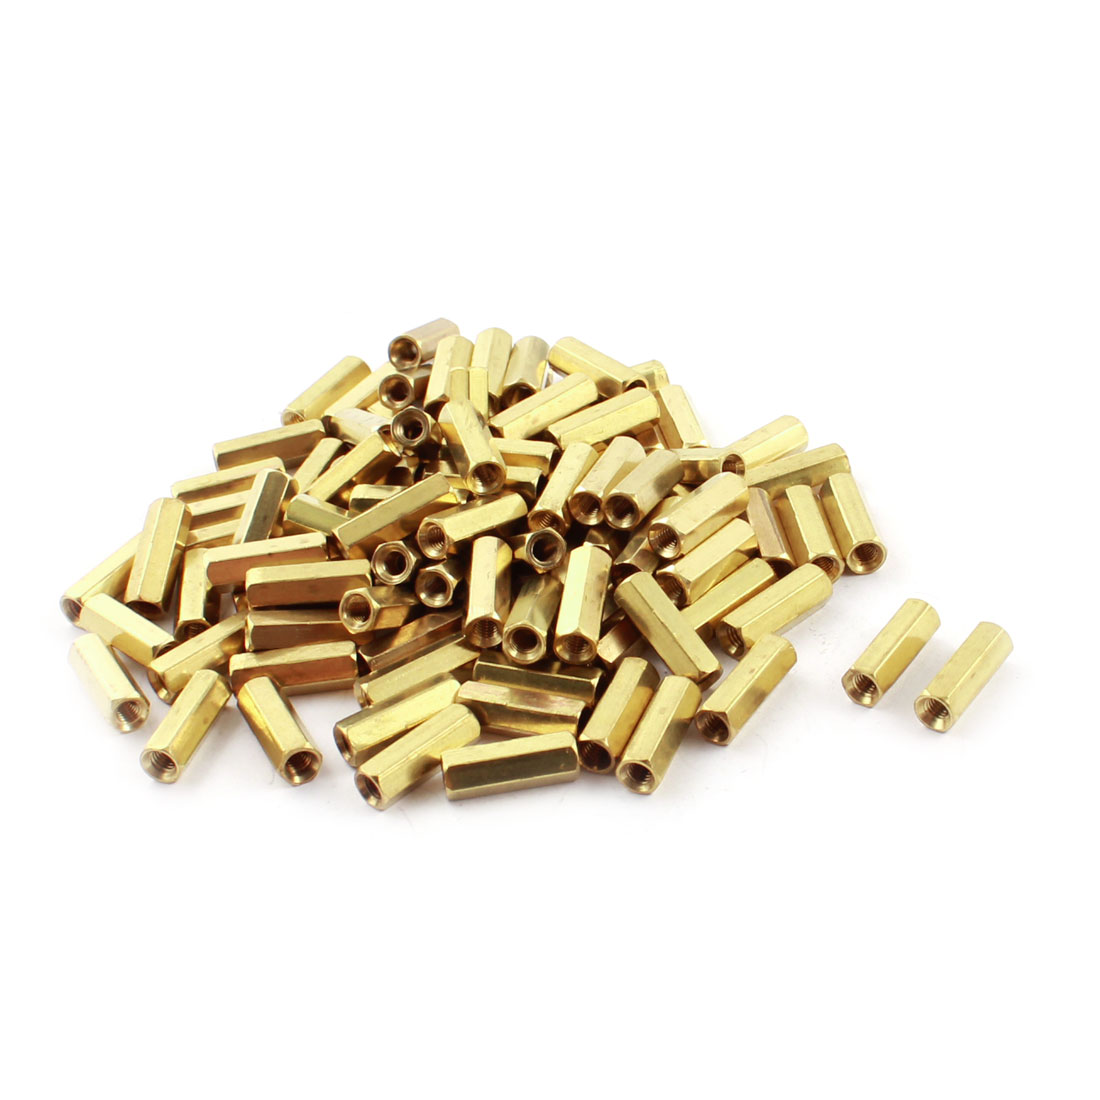 100 Pcs M3 x 14mm Female Thread Dual Ends Gold Tone Brass Pillar PCB Standoff Hexagonal Nut Spacer